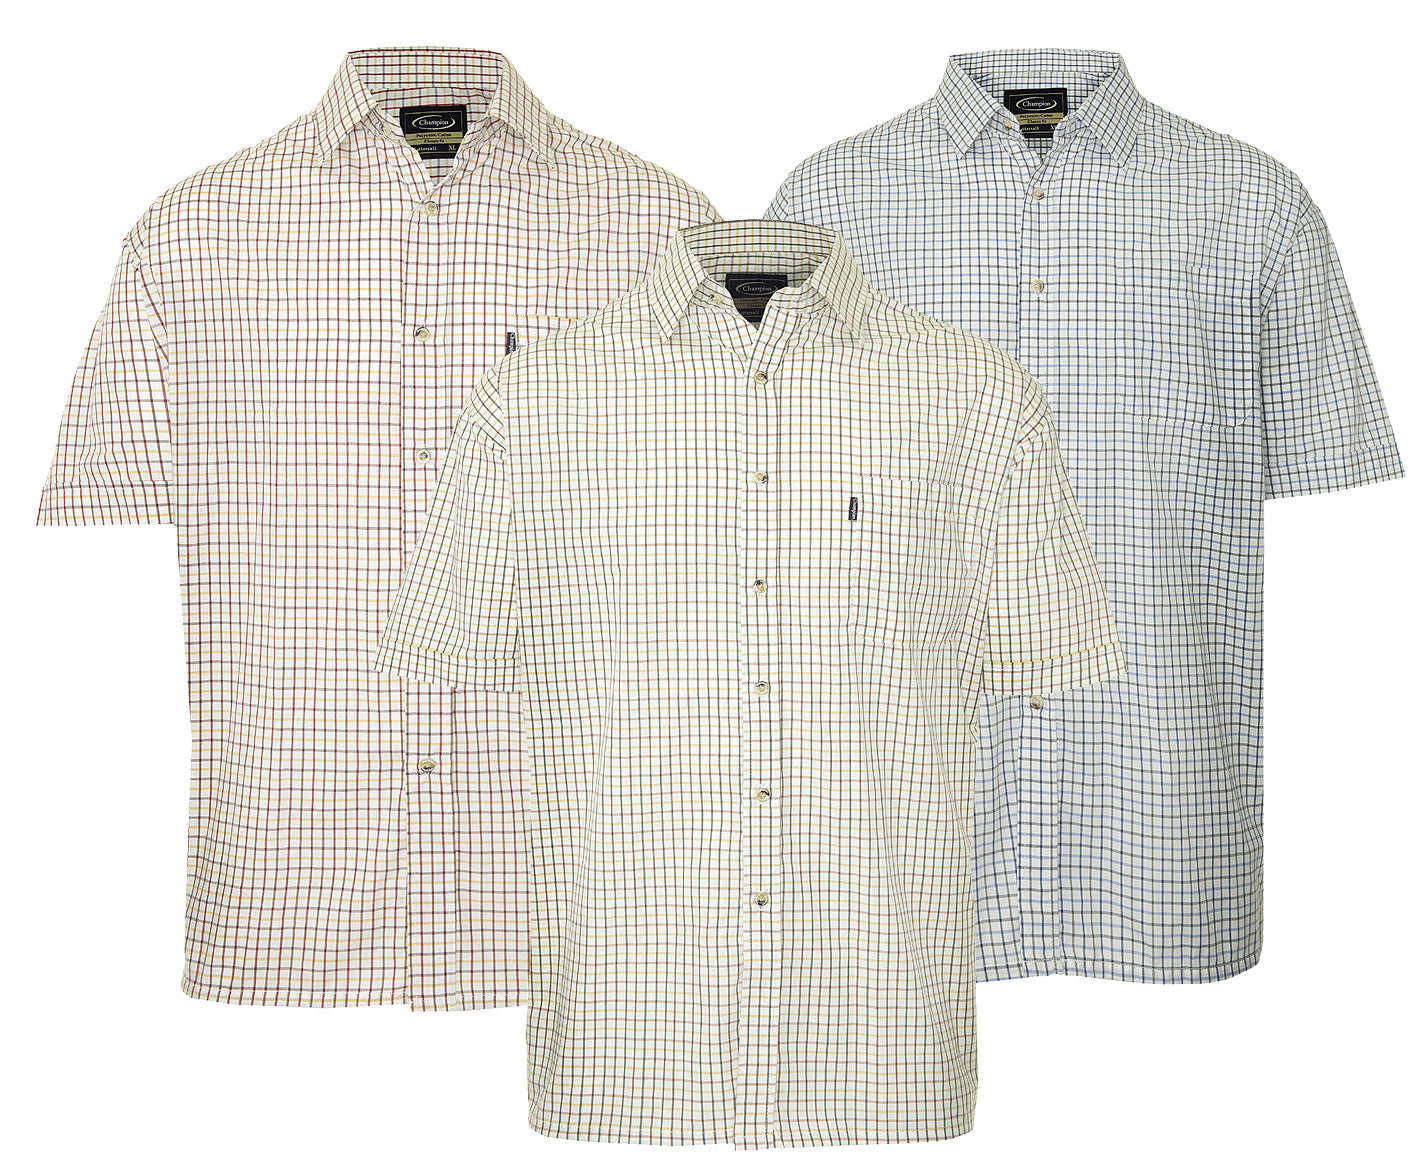 Champion summer Tattersall, the classic country tattersall check shirt with short sleeves, ideal for summer